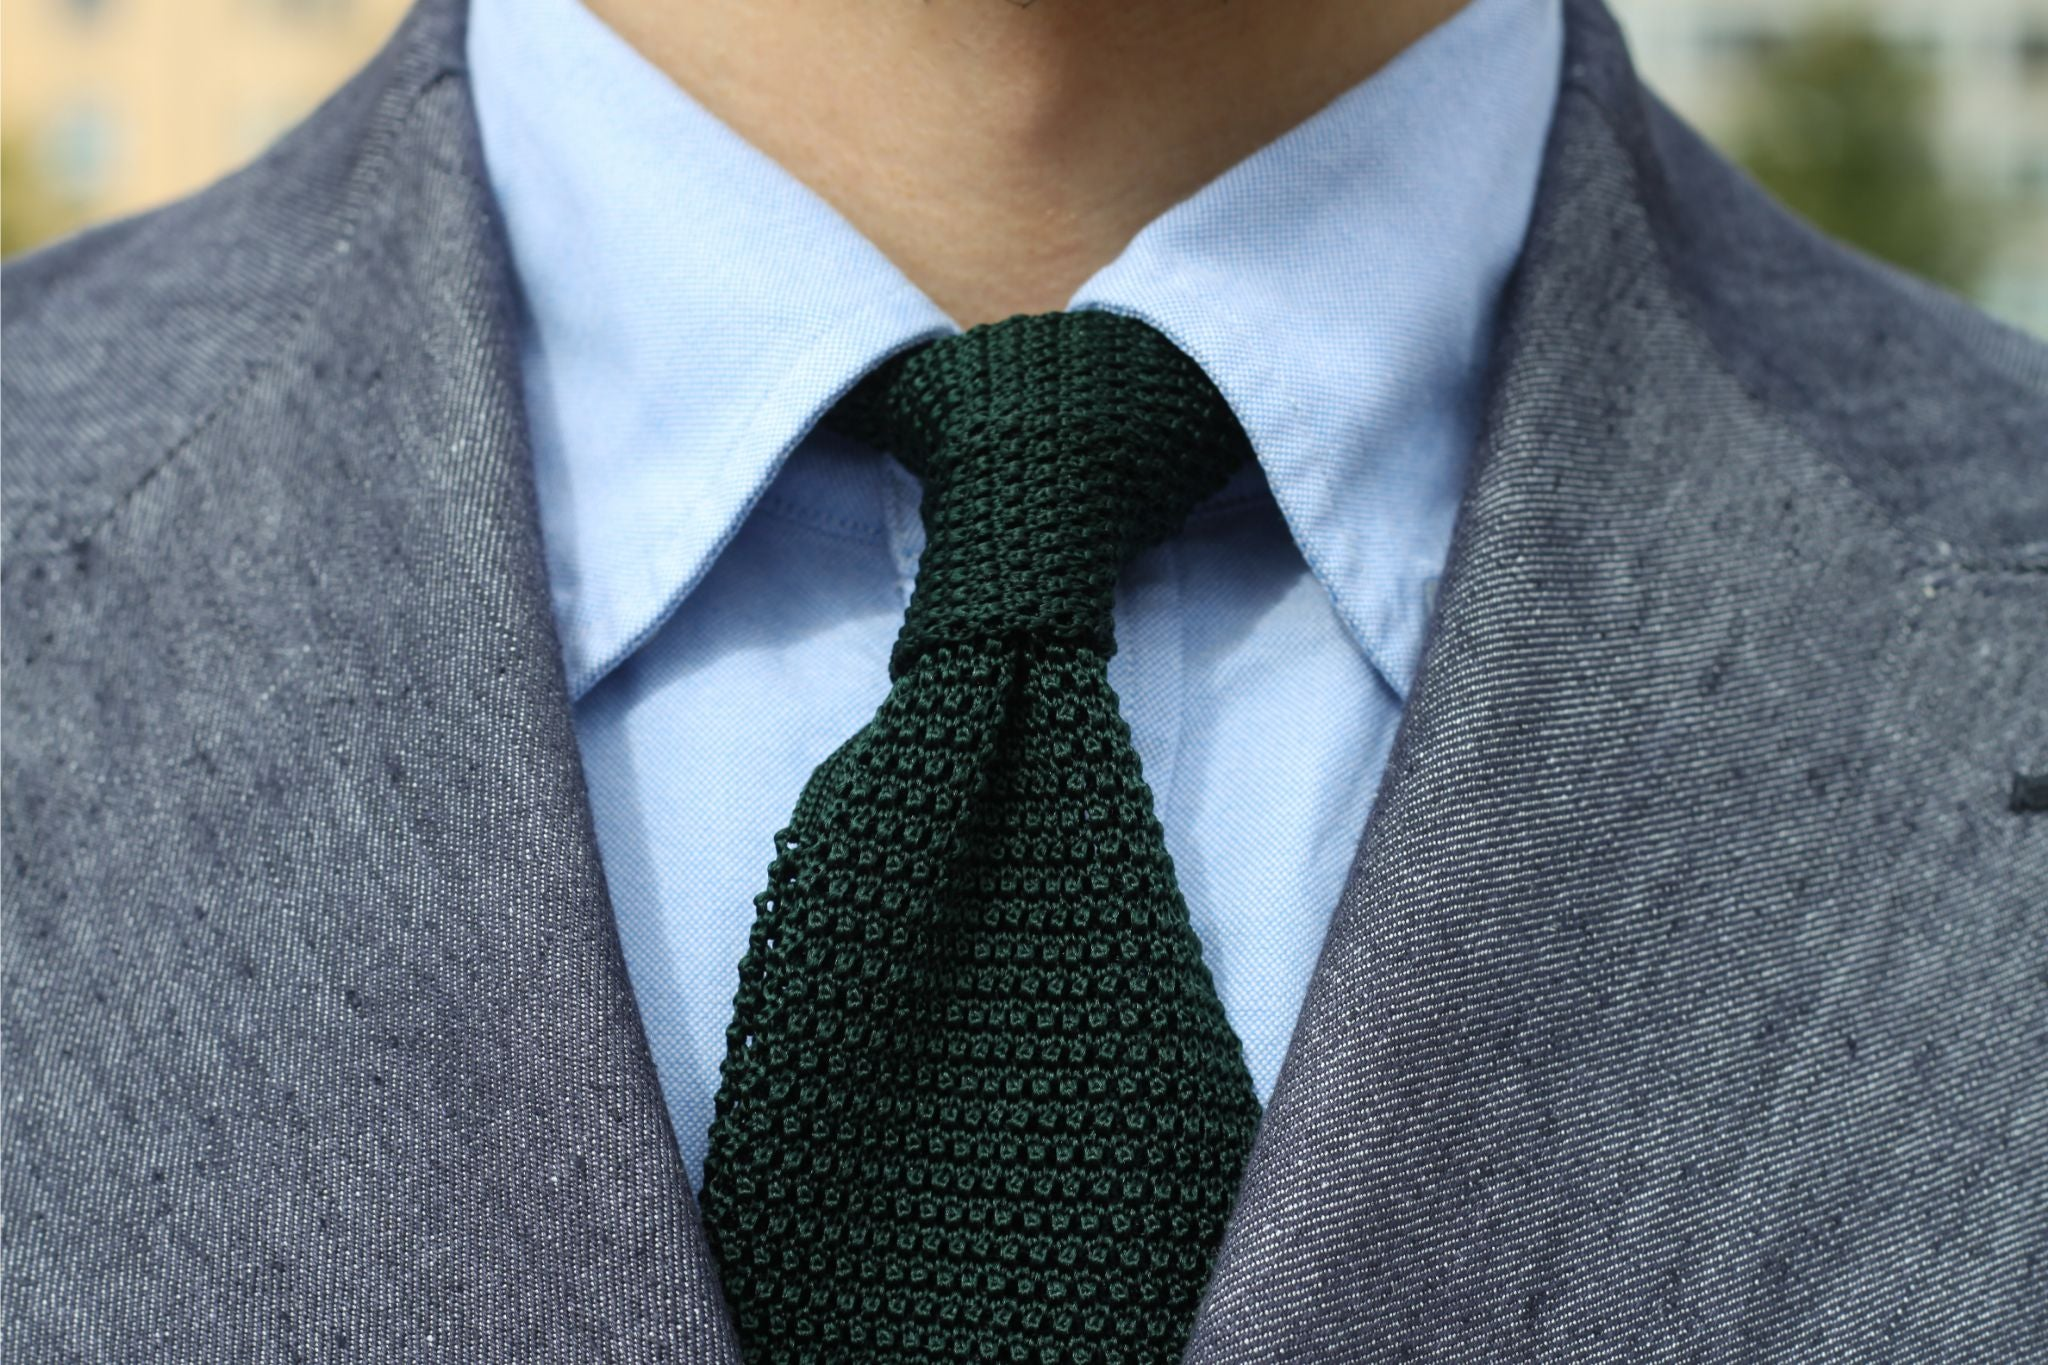 Bottle green knitted tie - details